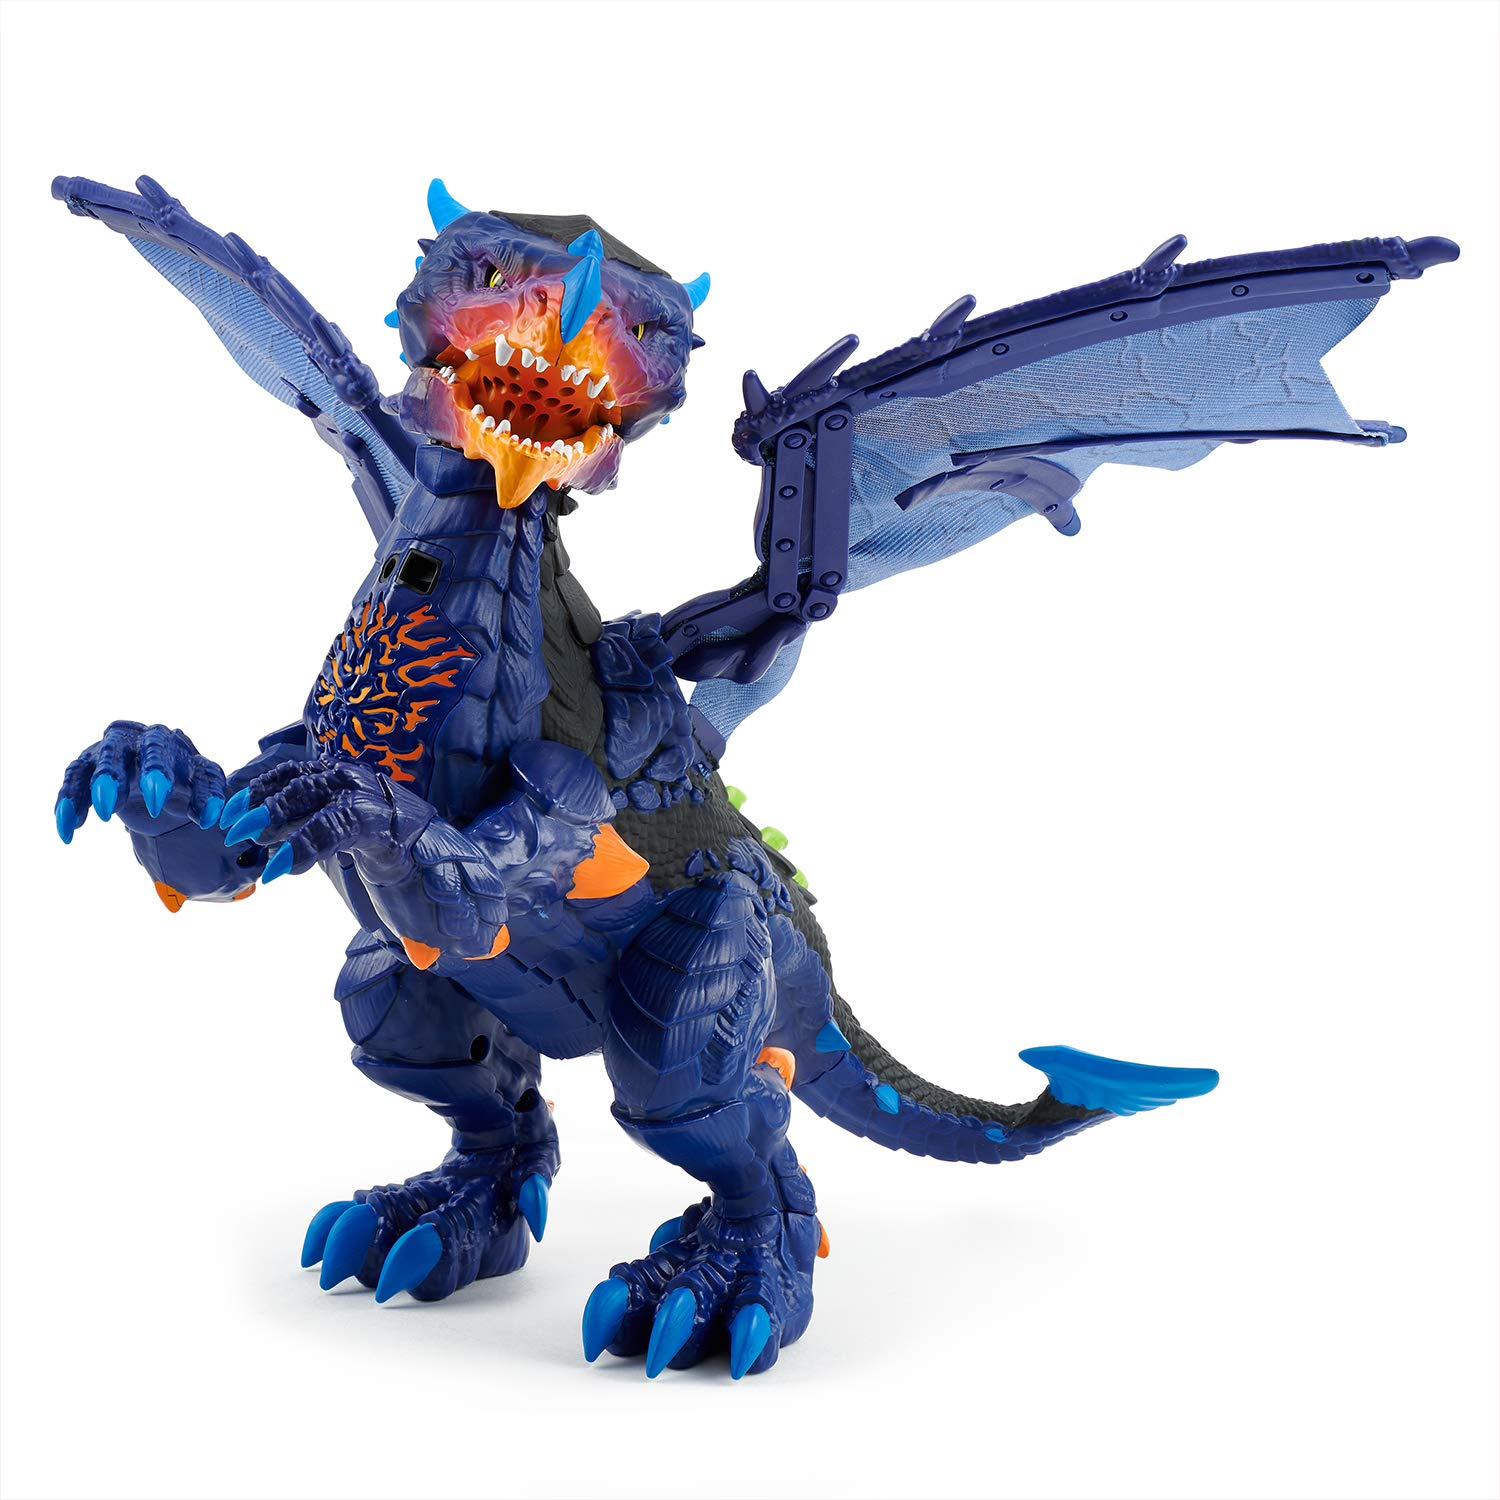 WowWee Untamed Legends Dragon - Vulcan (Dark Blue) - Interactive Toy